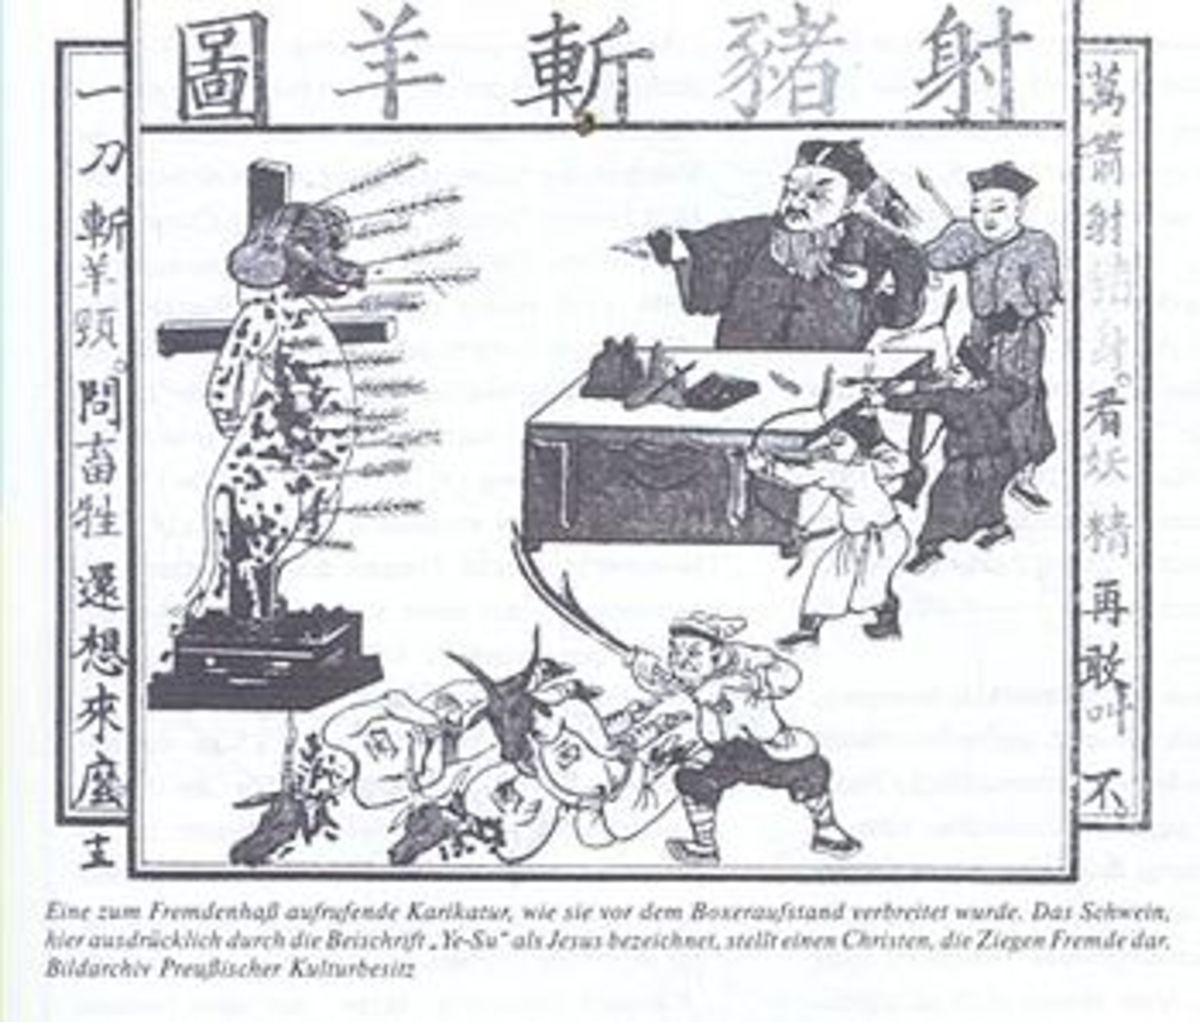 19th century woodblock print of a Westerners as animals being executed by Chinese officials.